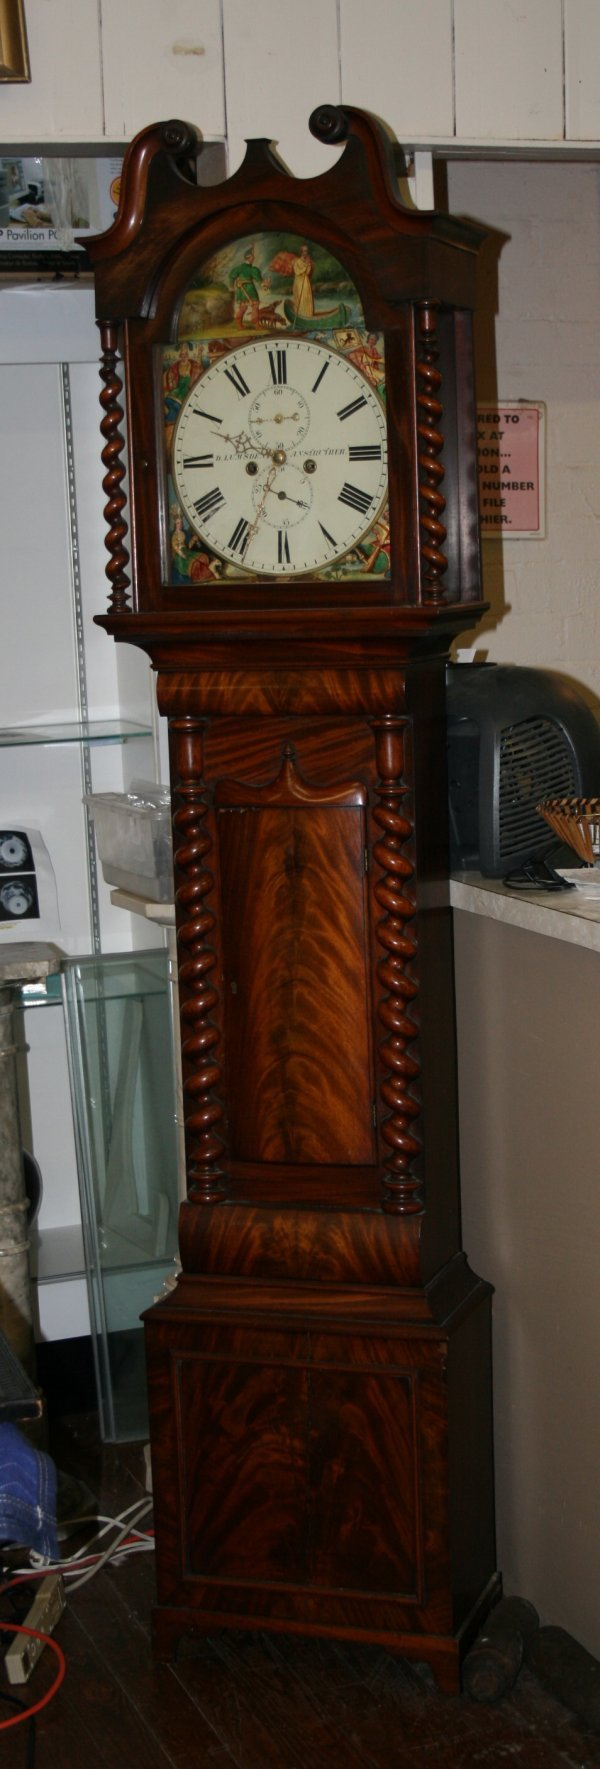 230: Scottish Grandfather Clock - circa 1830